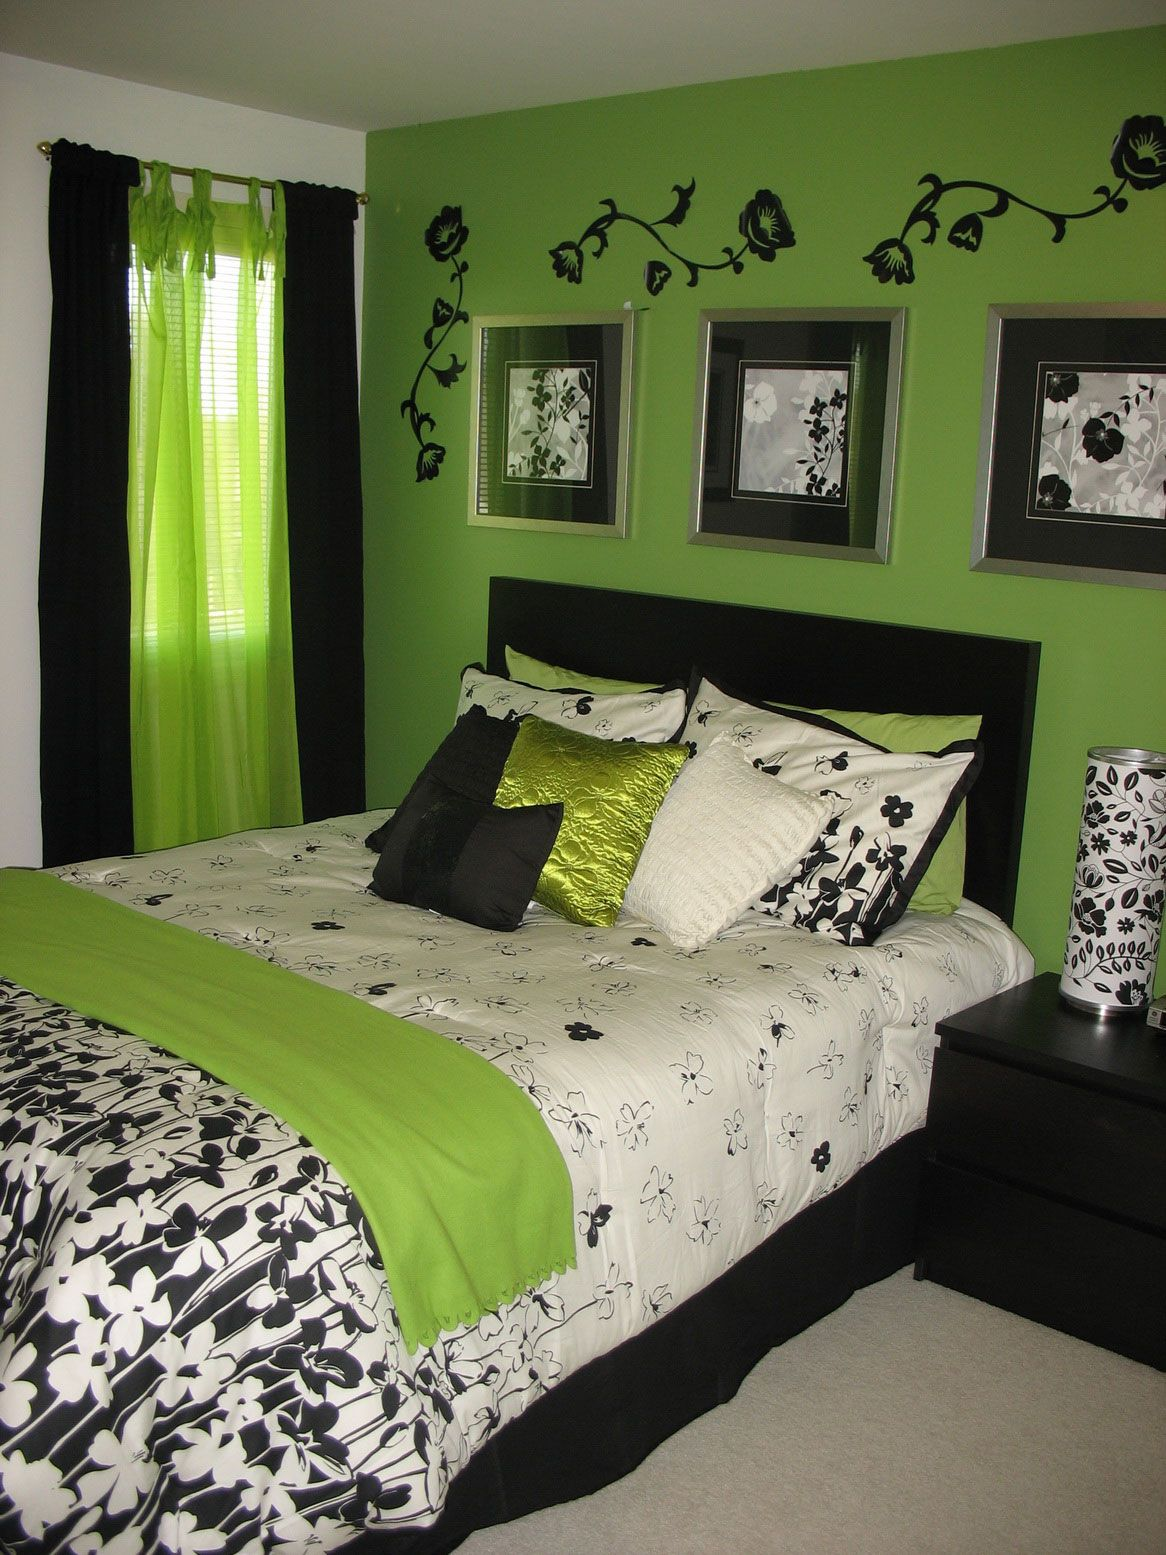 Beautiful Young Adult Bedroom Ideas   Google Search Would Like Blue Or Purple Instead  Of Green For Me